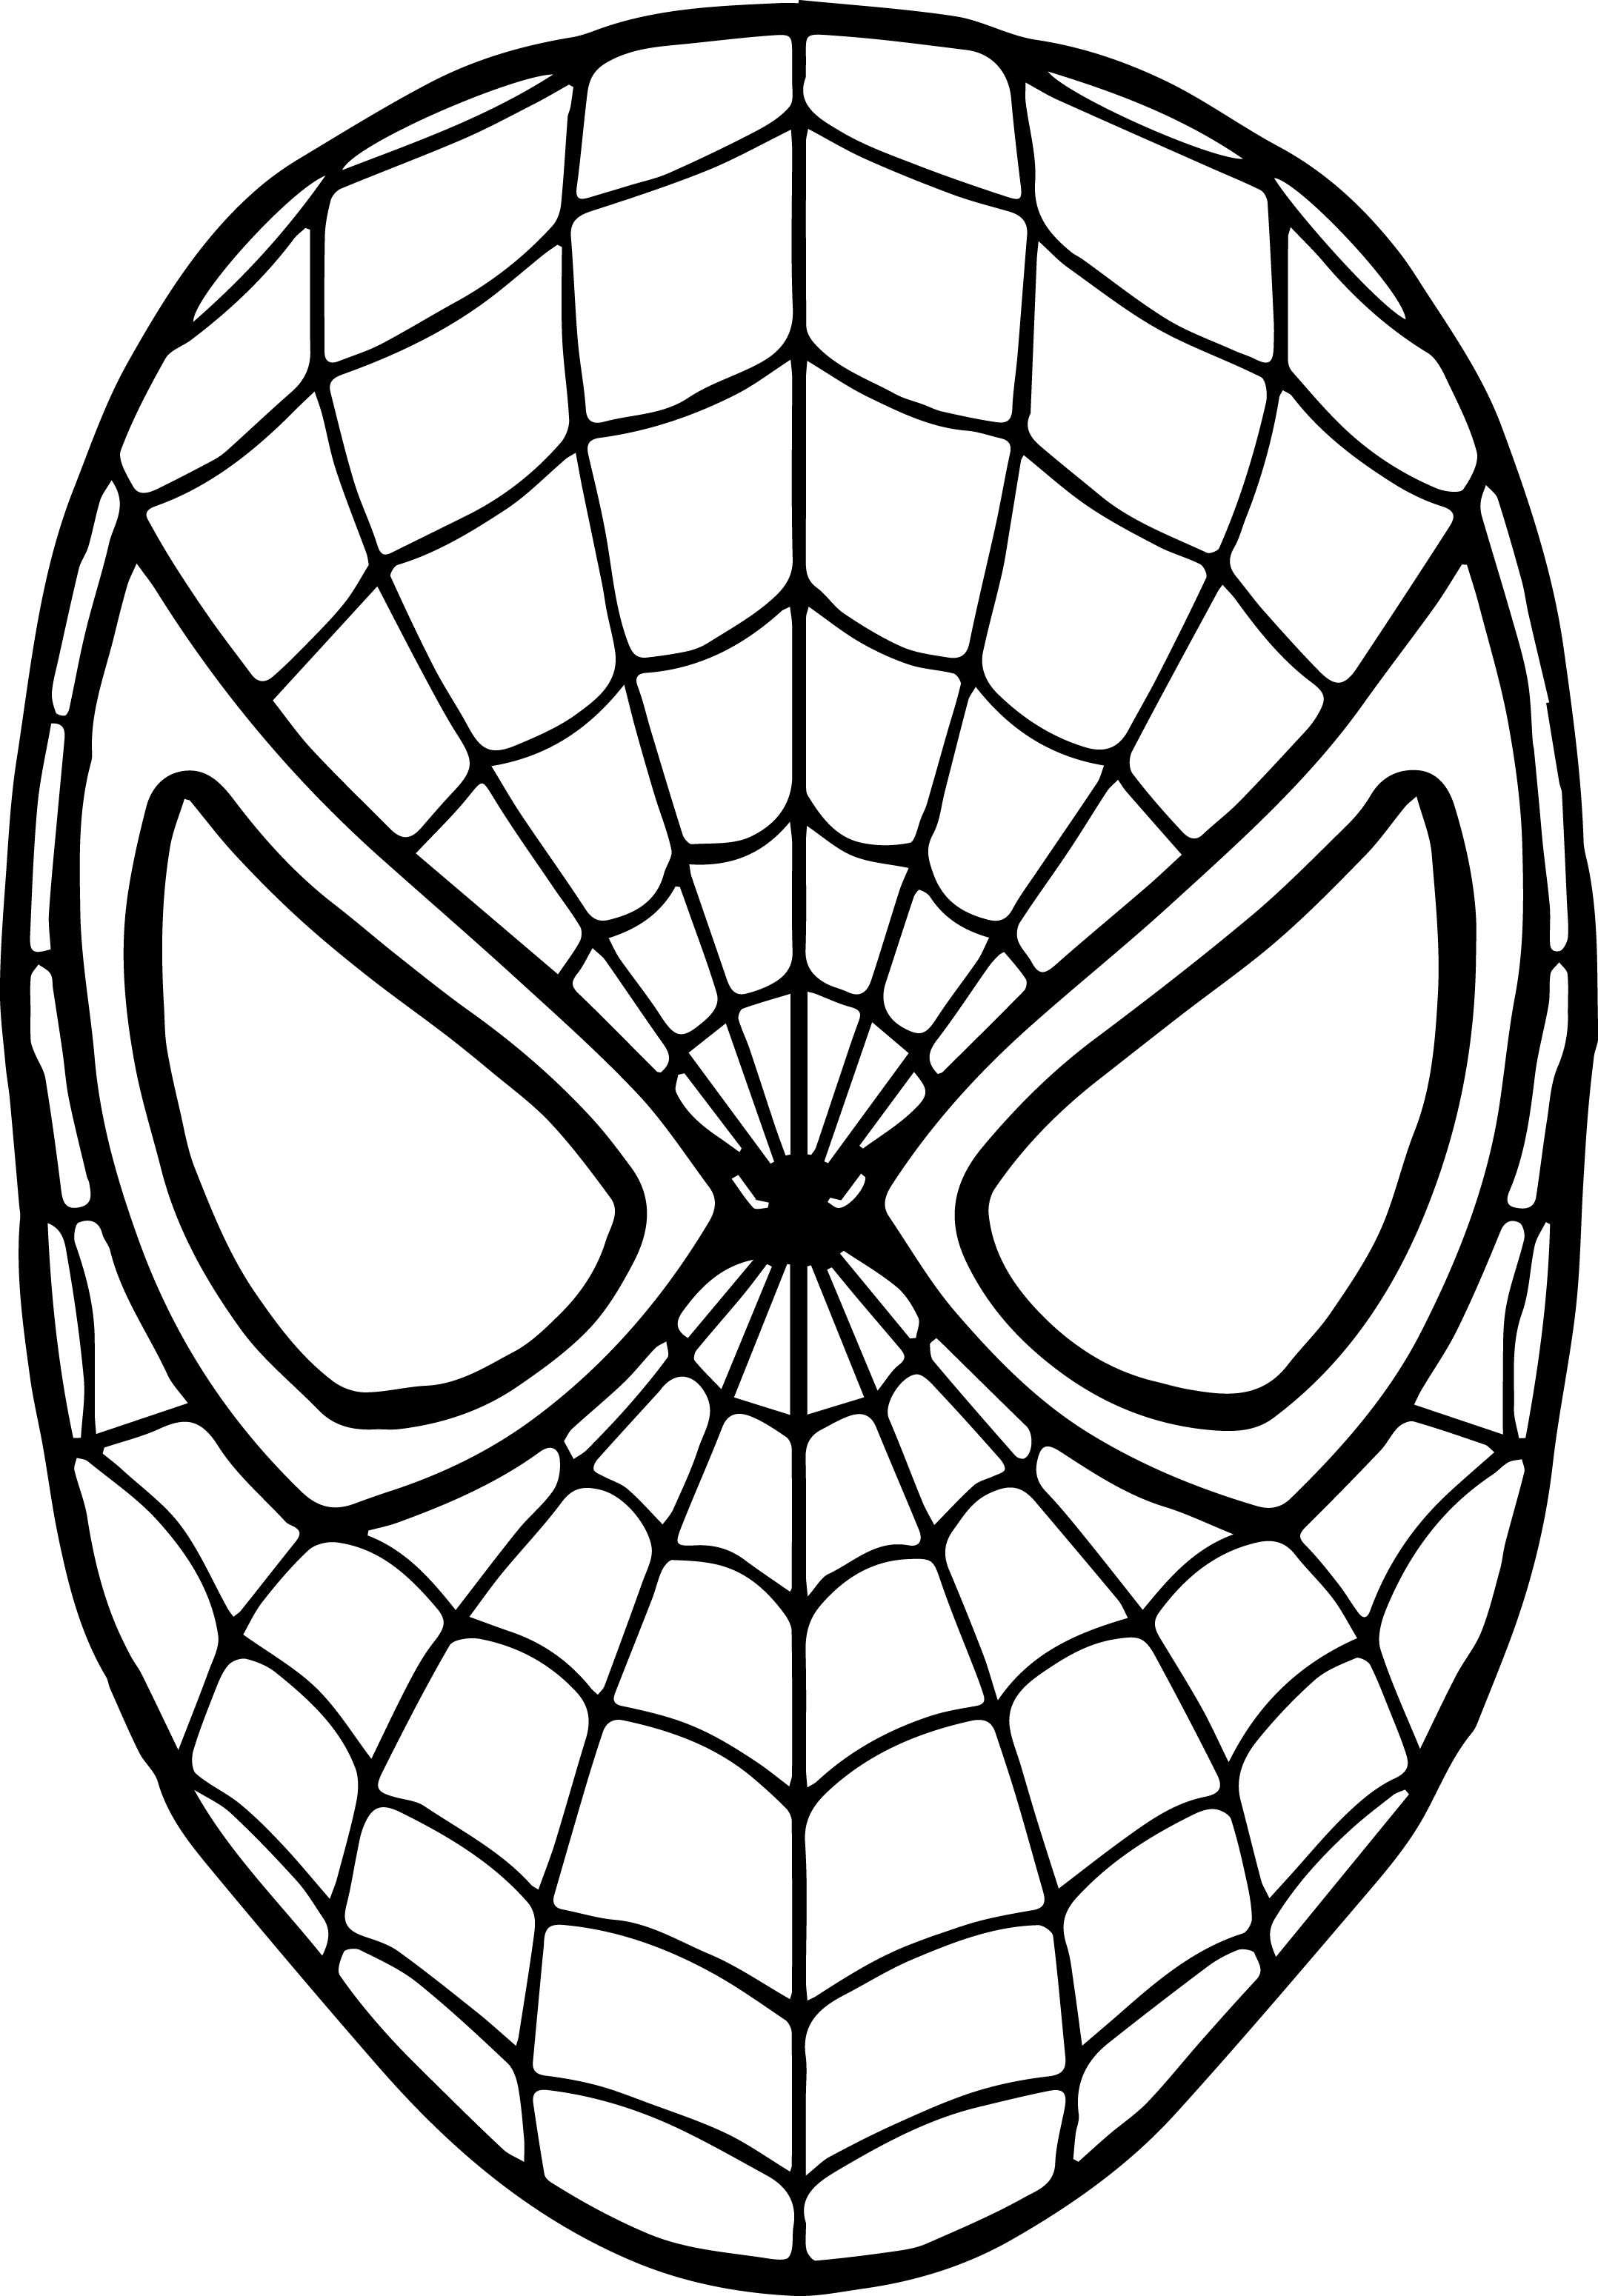 Spiderman Coloring Pages With Images Spiderman Coloring